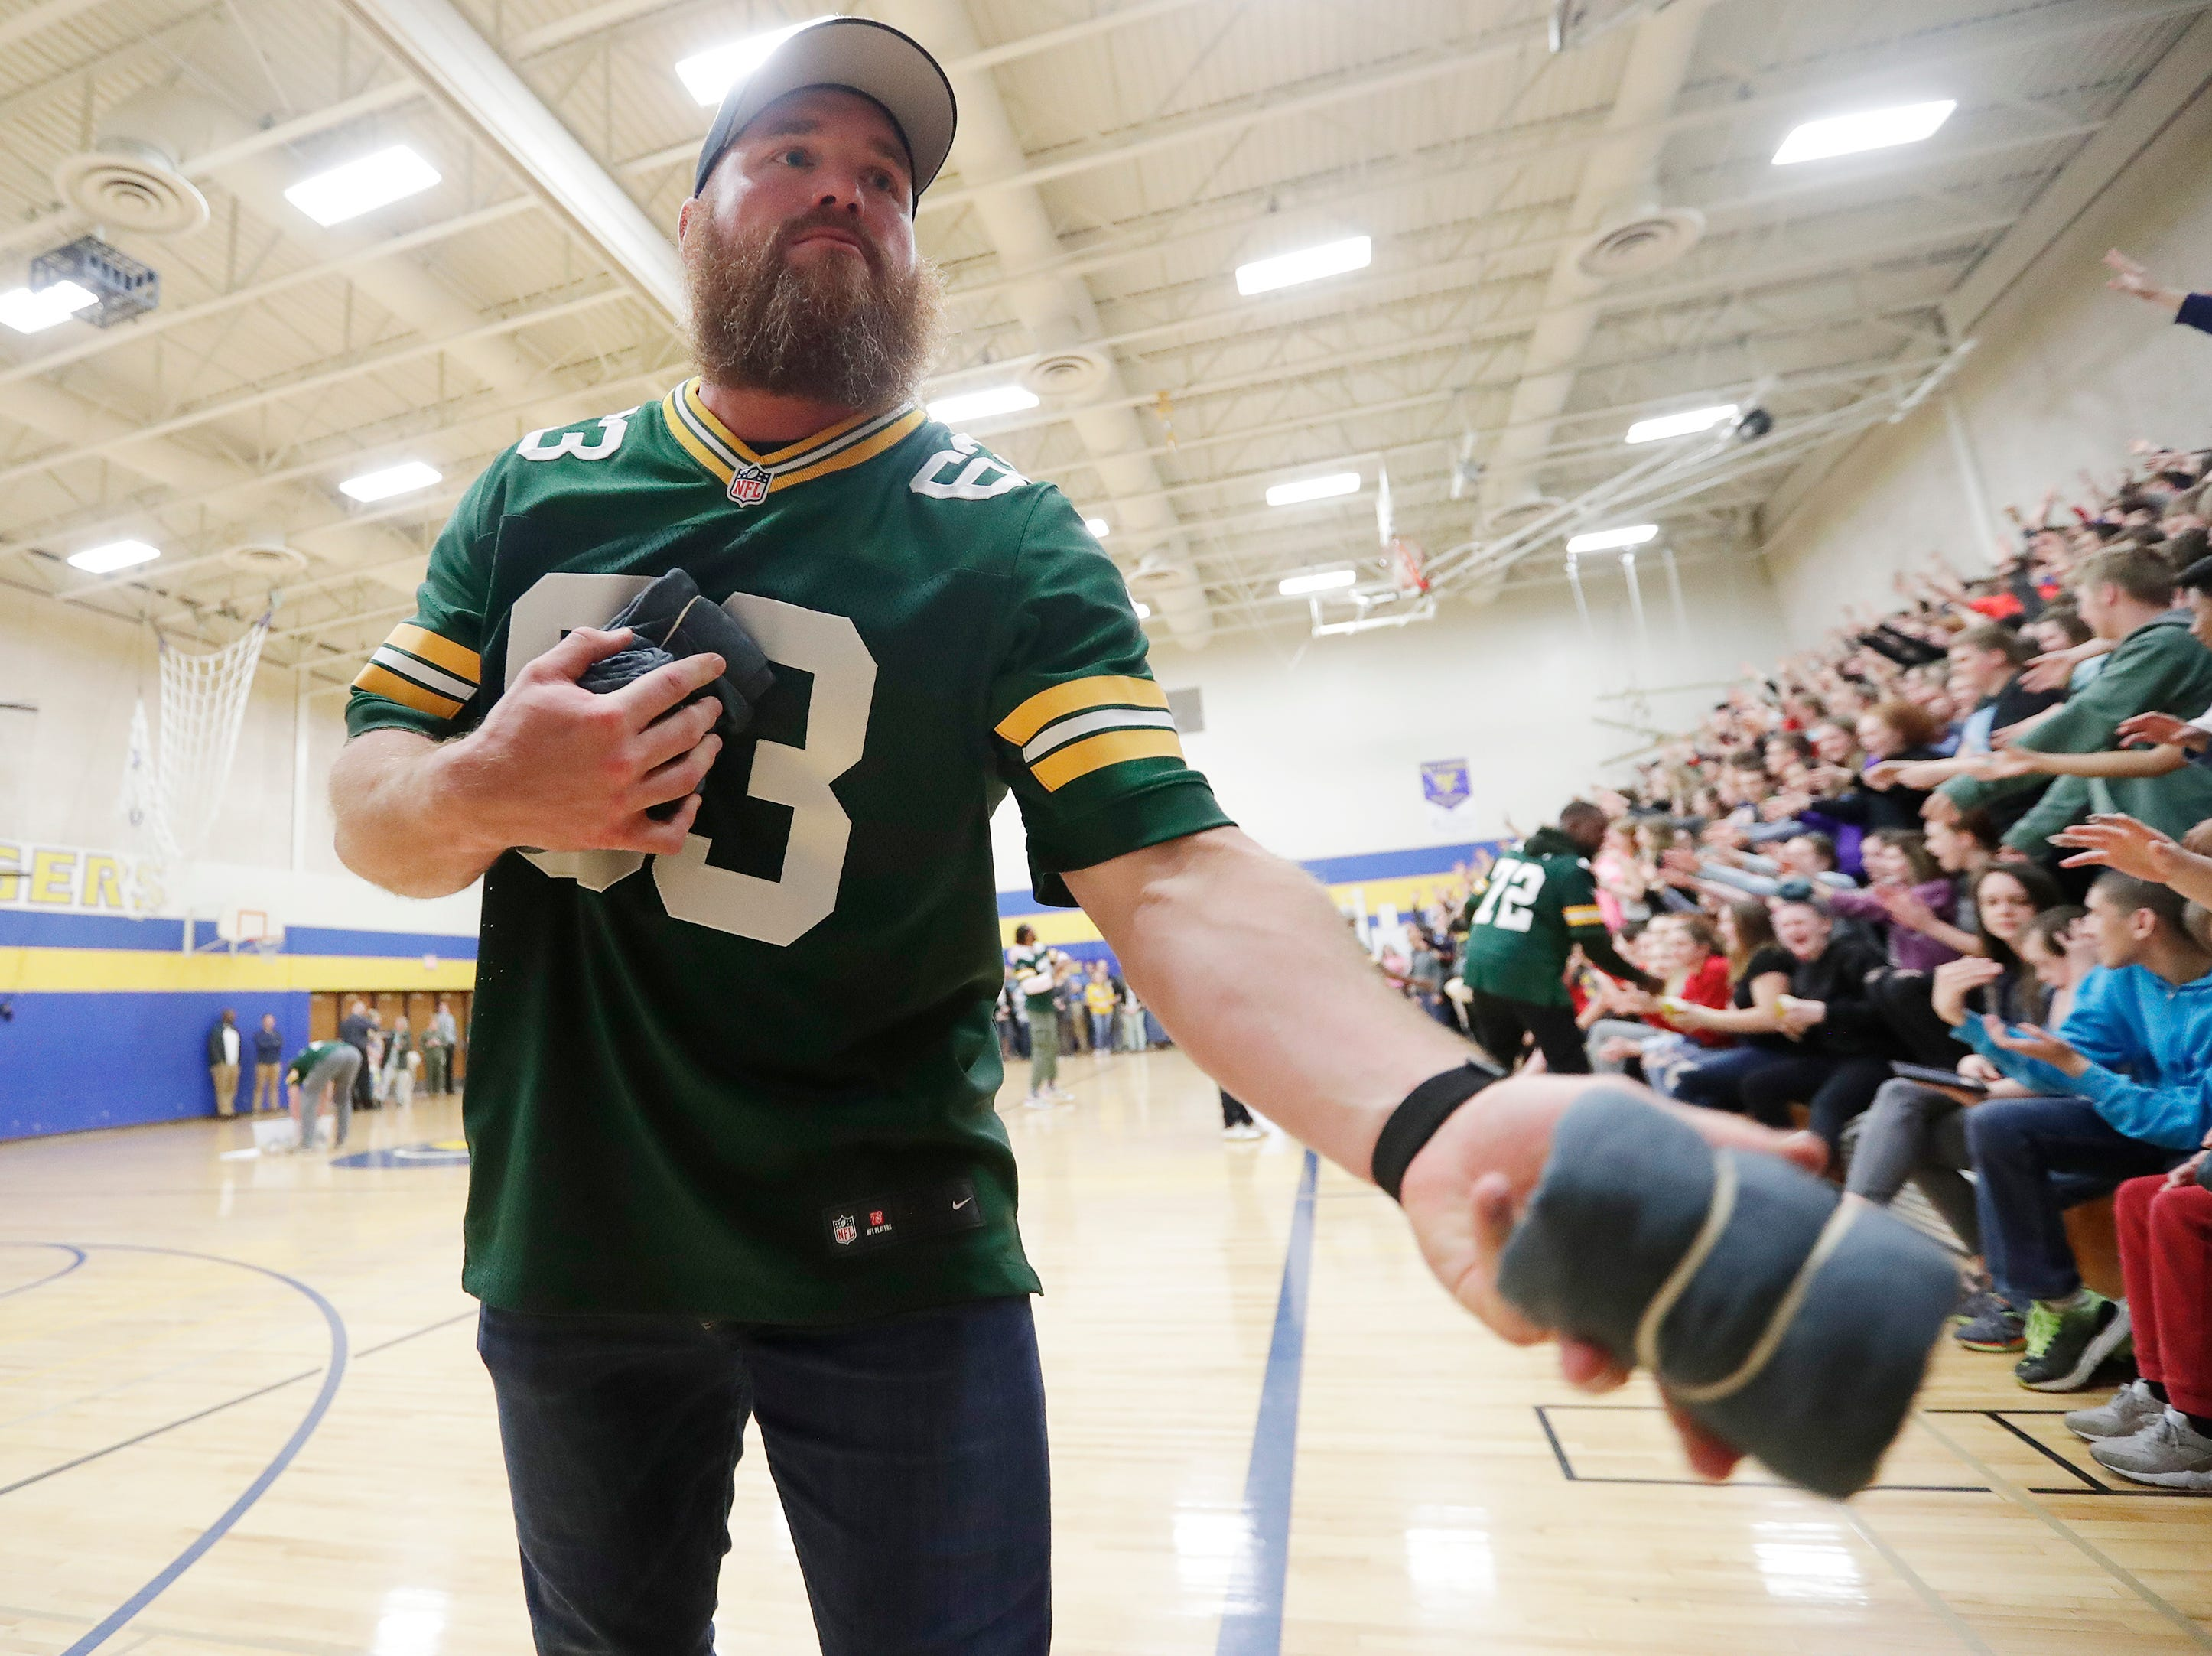 Former Green Bay Packers player Scott Wells hands out shirts during a stop on the Packers Tailgate Tour at Ben Franklin Junior High High School on Tuesday, April 9, 2019 in Stevens Point, Wis.